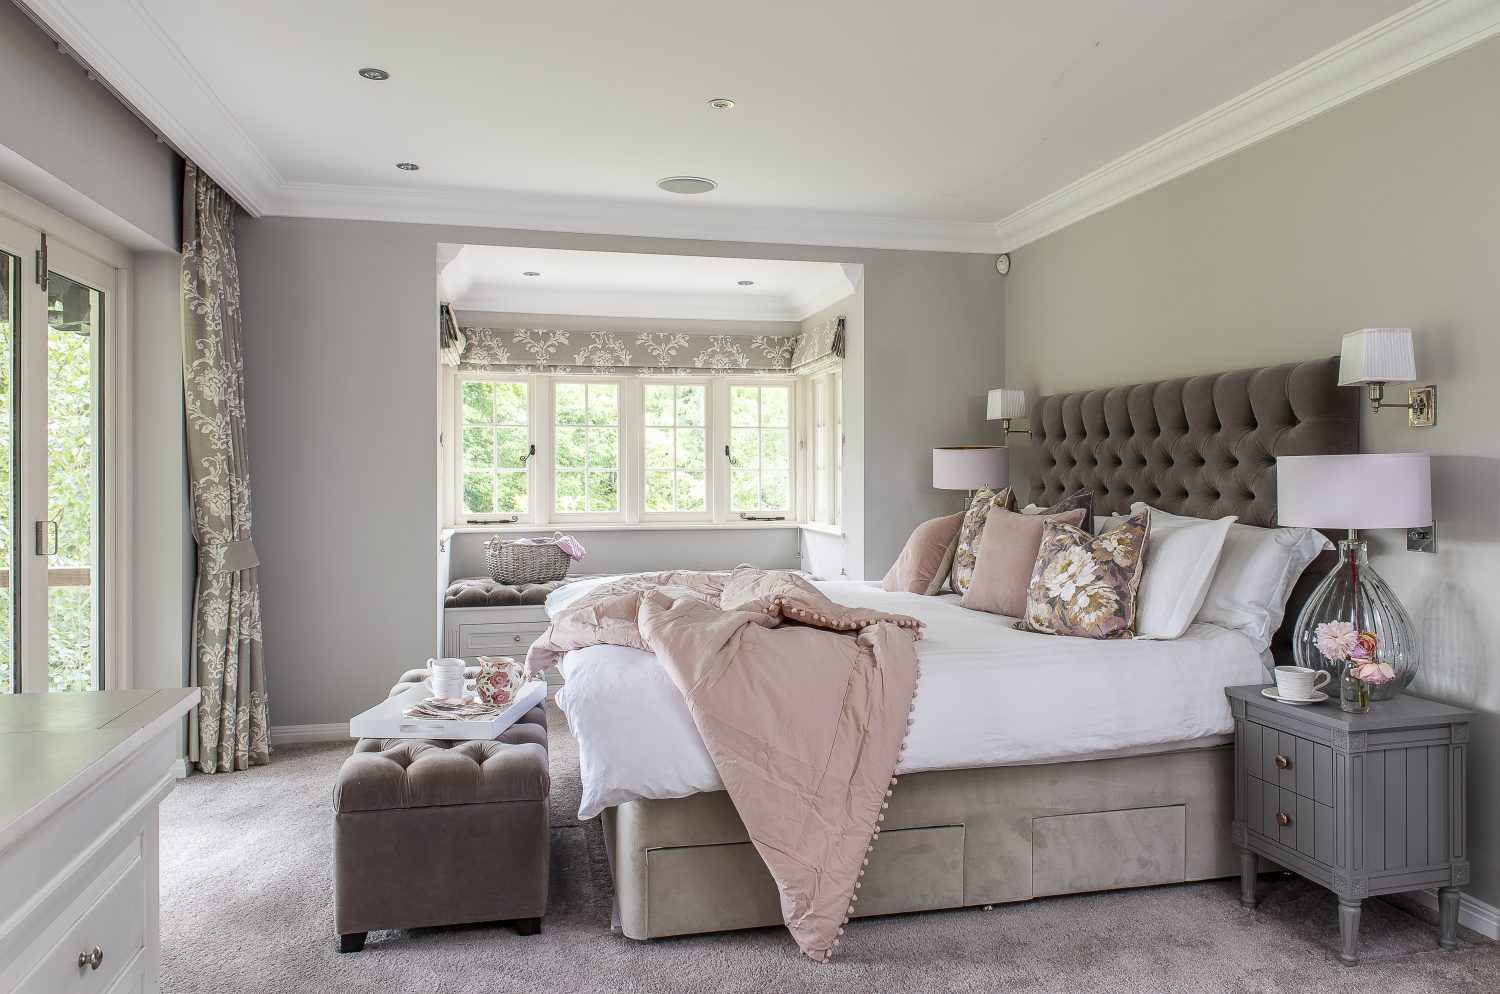 Simple opulence best describes this bedroom. The bed looks straight onto the charming oak balcony and the garden with the buttercup field beyond